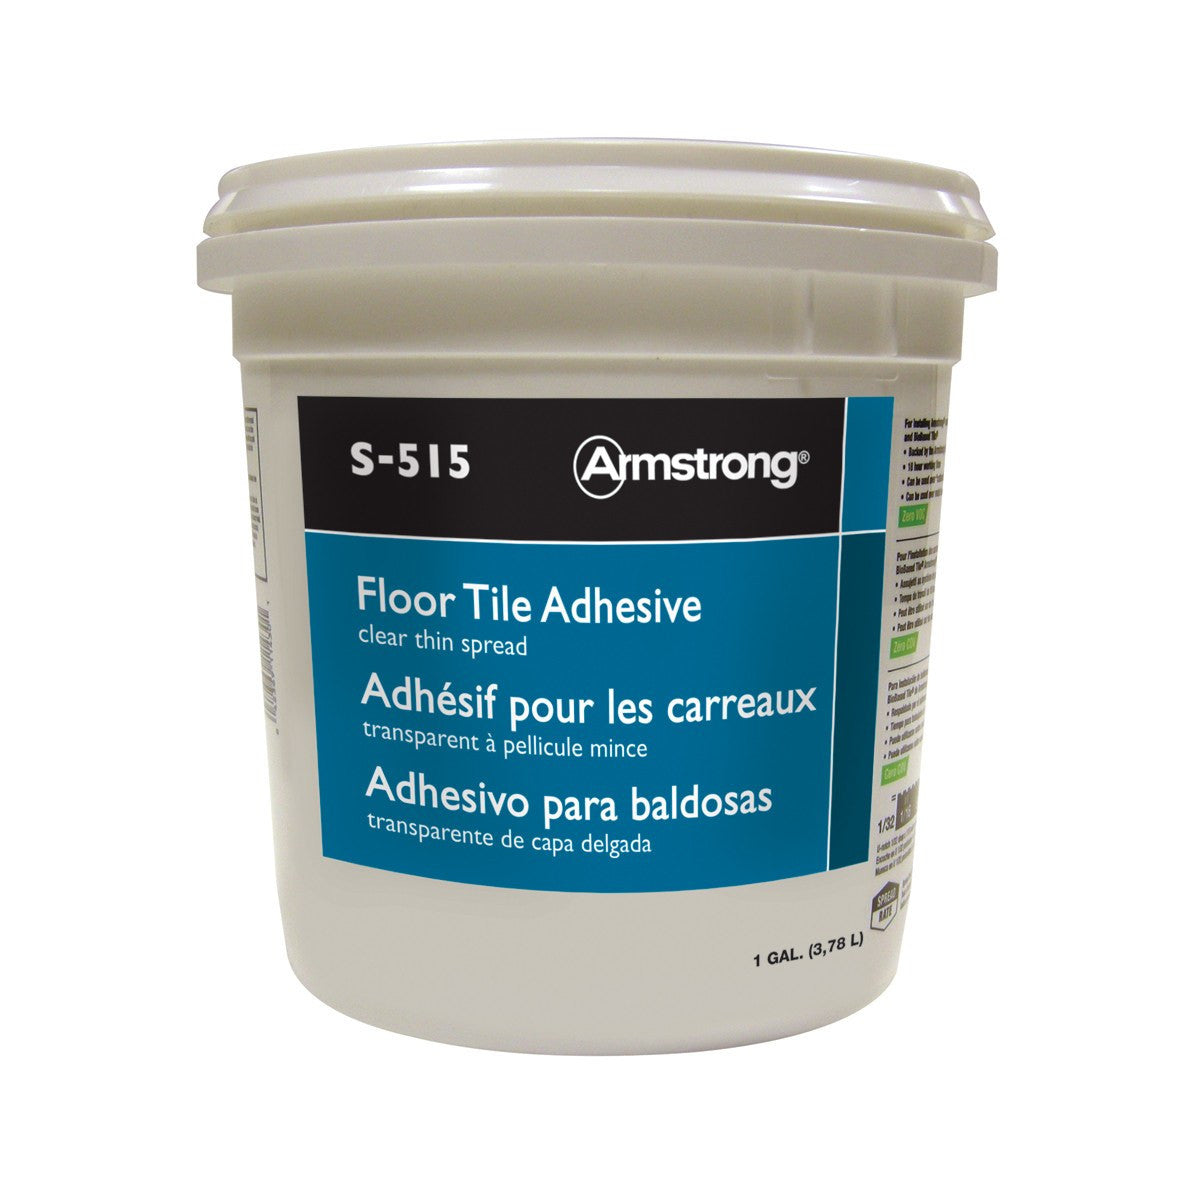 armstrong vct adhesive s 515 vinyl floor tile glue. Black Bedroom Furniture Sets. Home Design Ideas